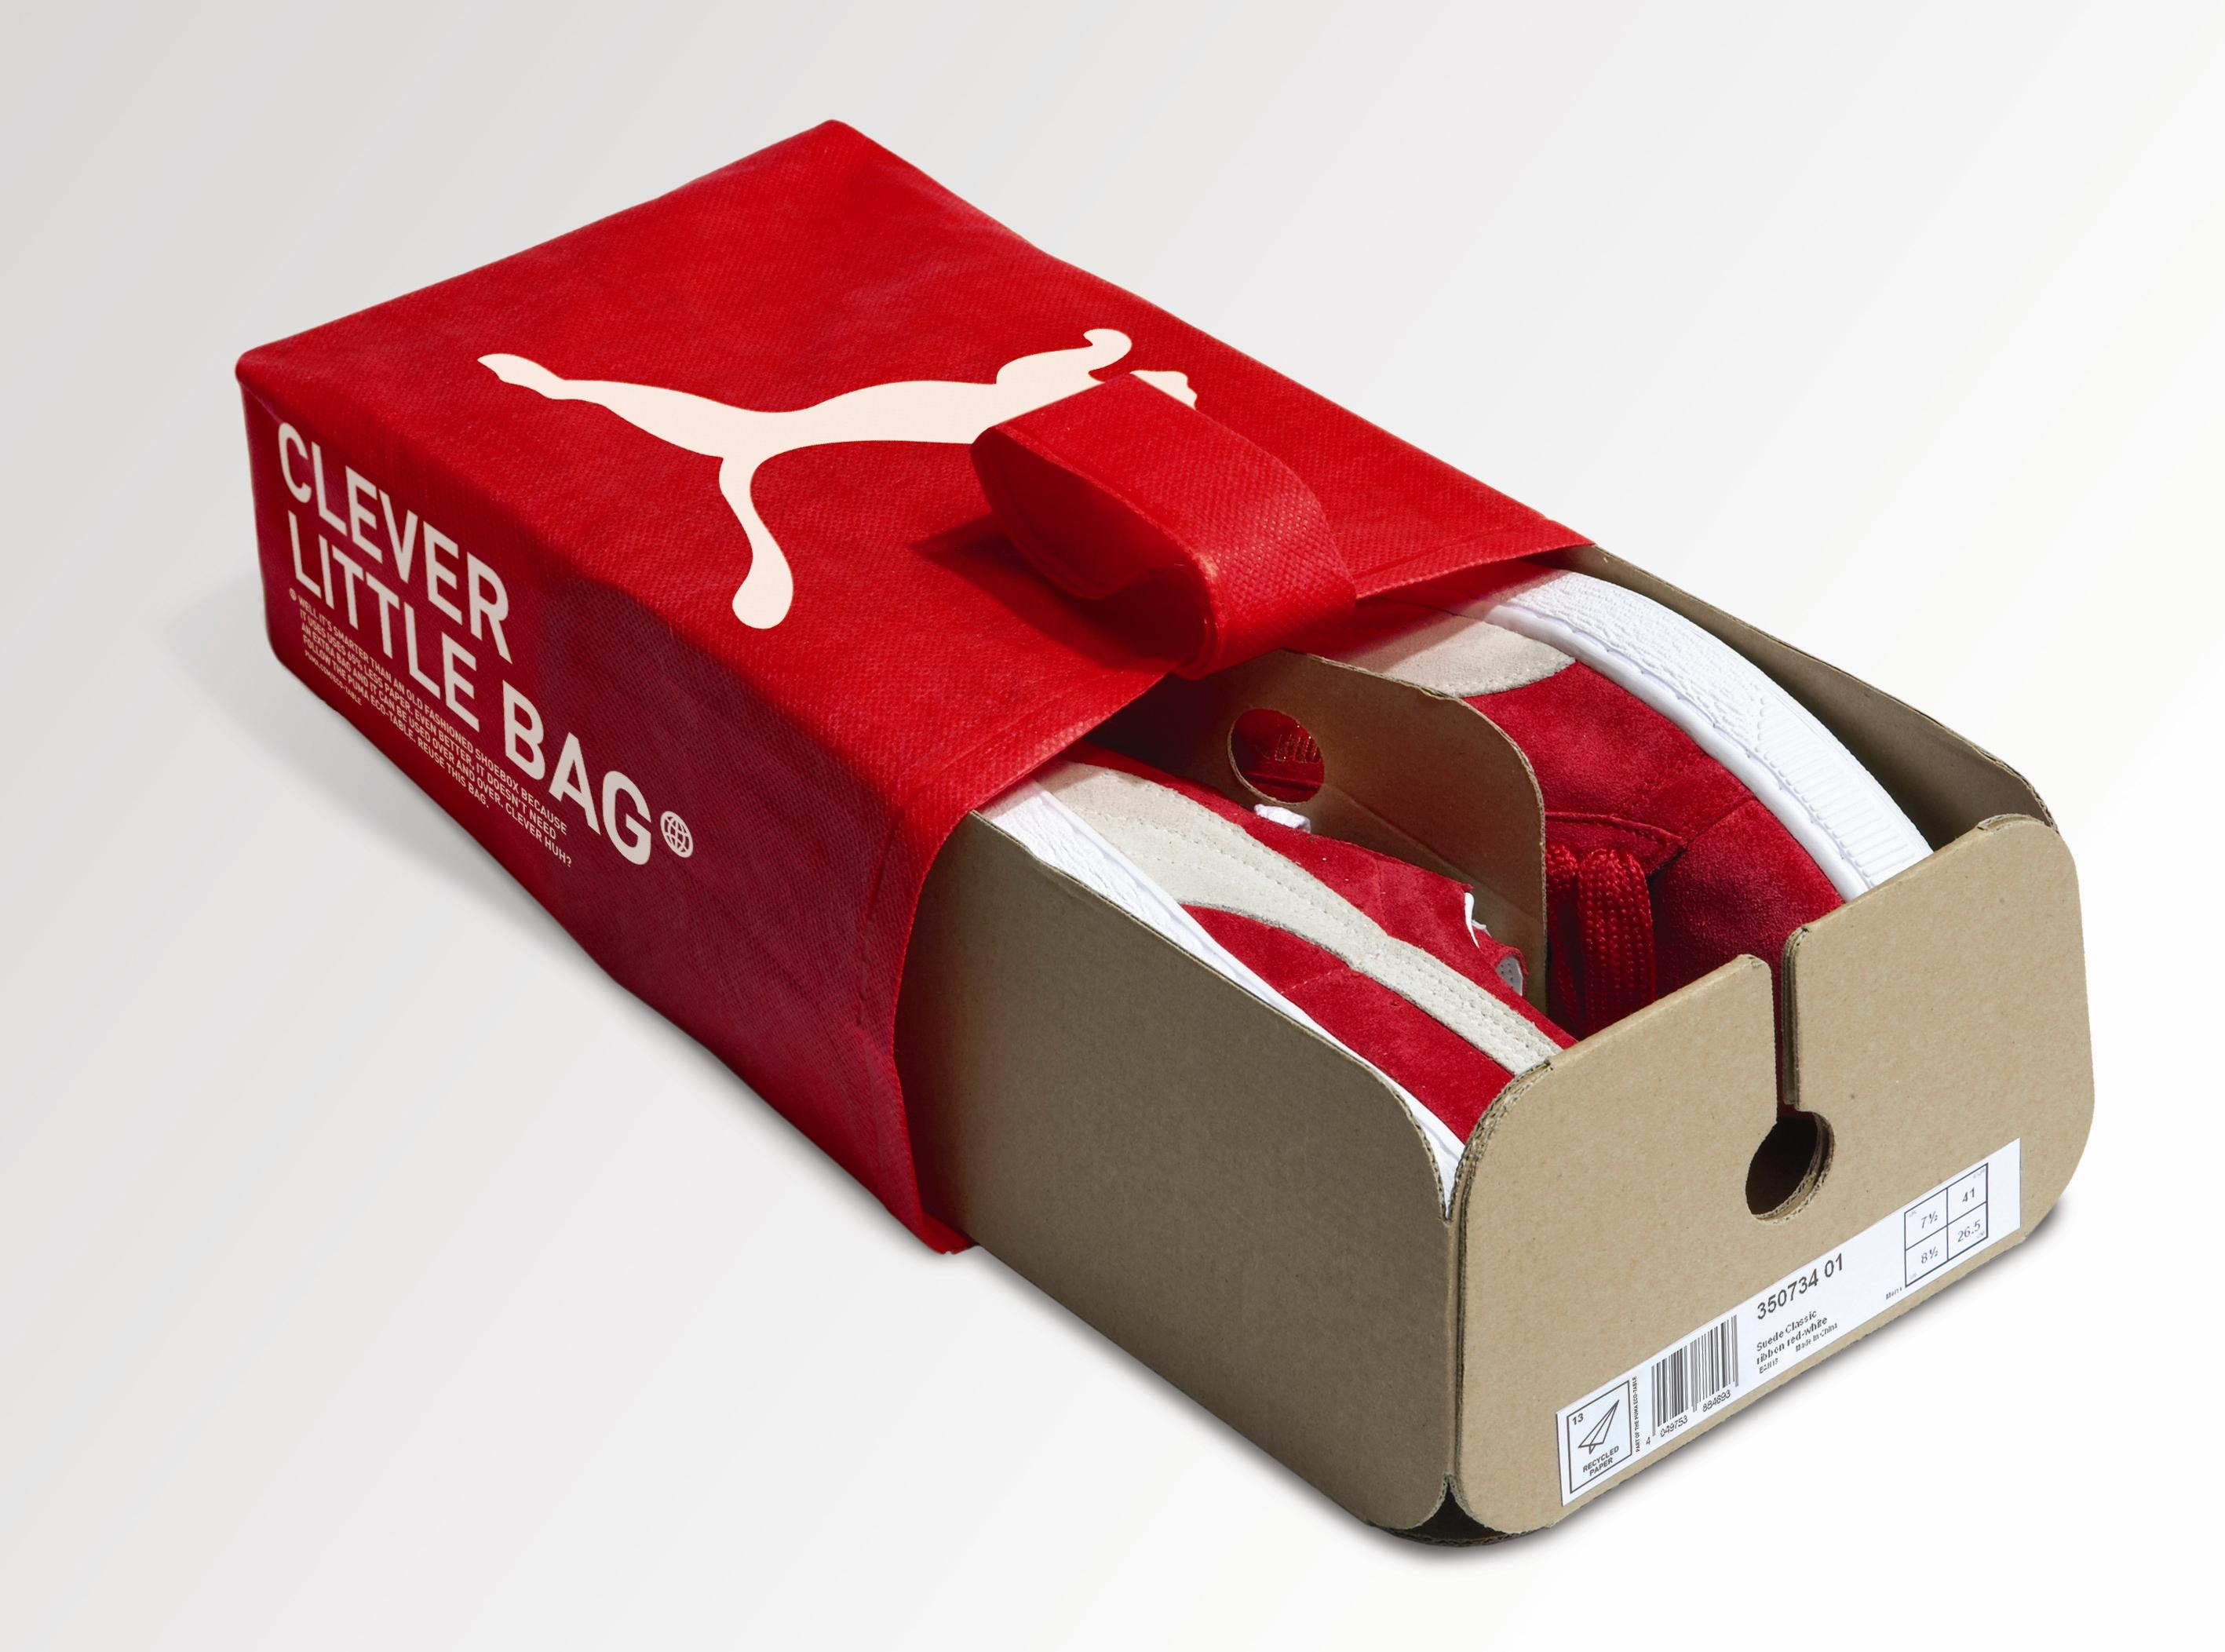 PUMA.Safe Launches New Sustainable Packaging Designed by Yves Behar | PUMA Vision